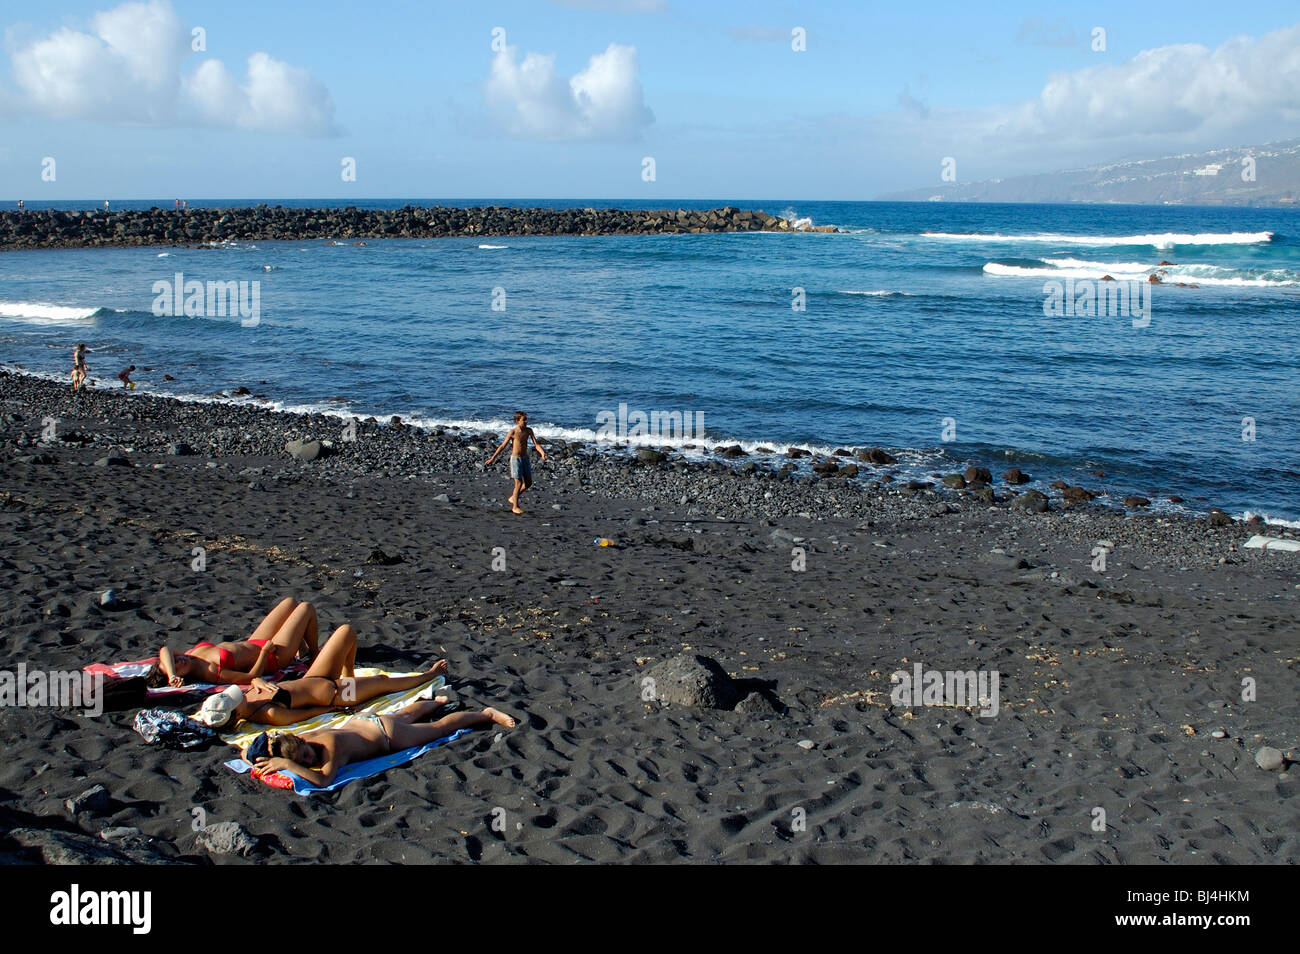 Spain canary islands tenerife puerto de la cruz playa martianez stock photo 28375864 alamy - Playa puerto de la cruz tenerife ...